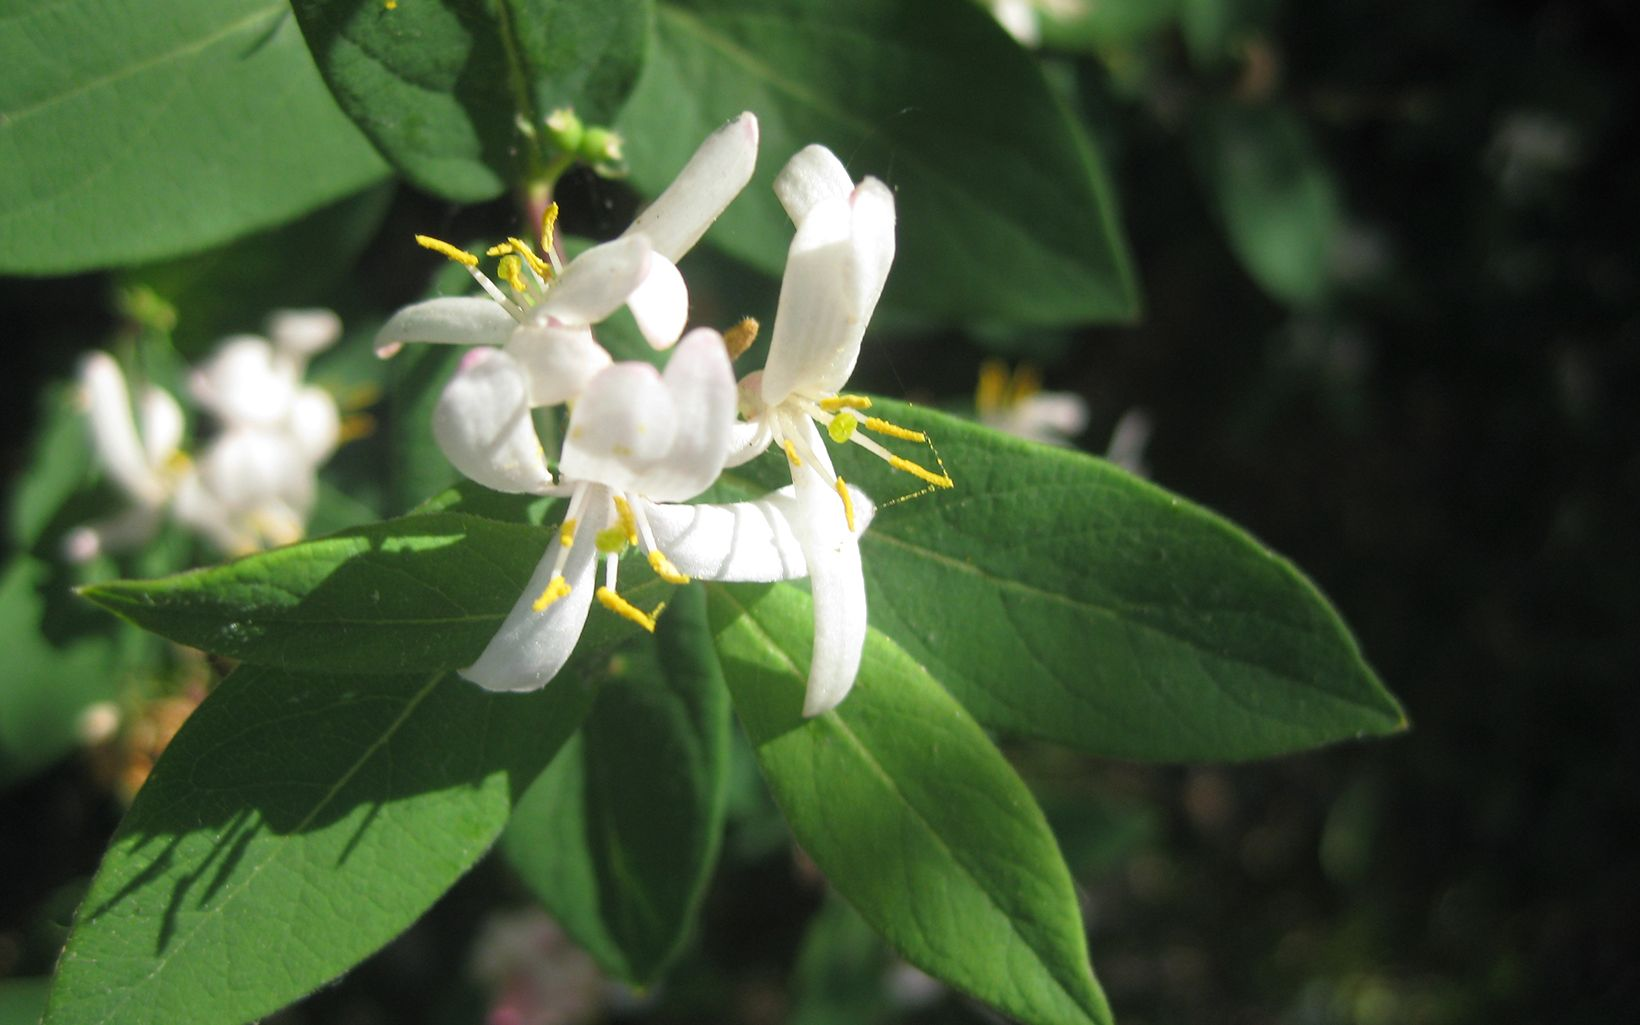 Invasive Bush honeysuckle native to northern China, Korea and parts of Japan and was introduced to the U.S. in 1897.